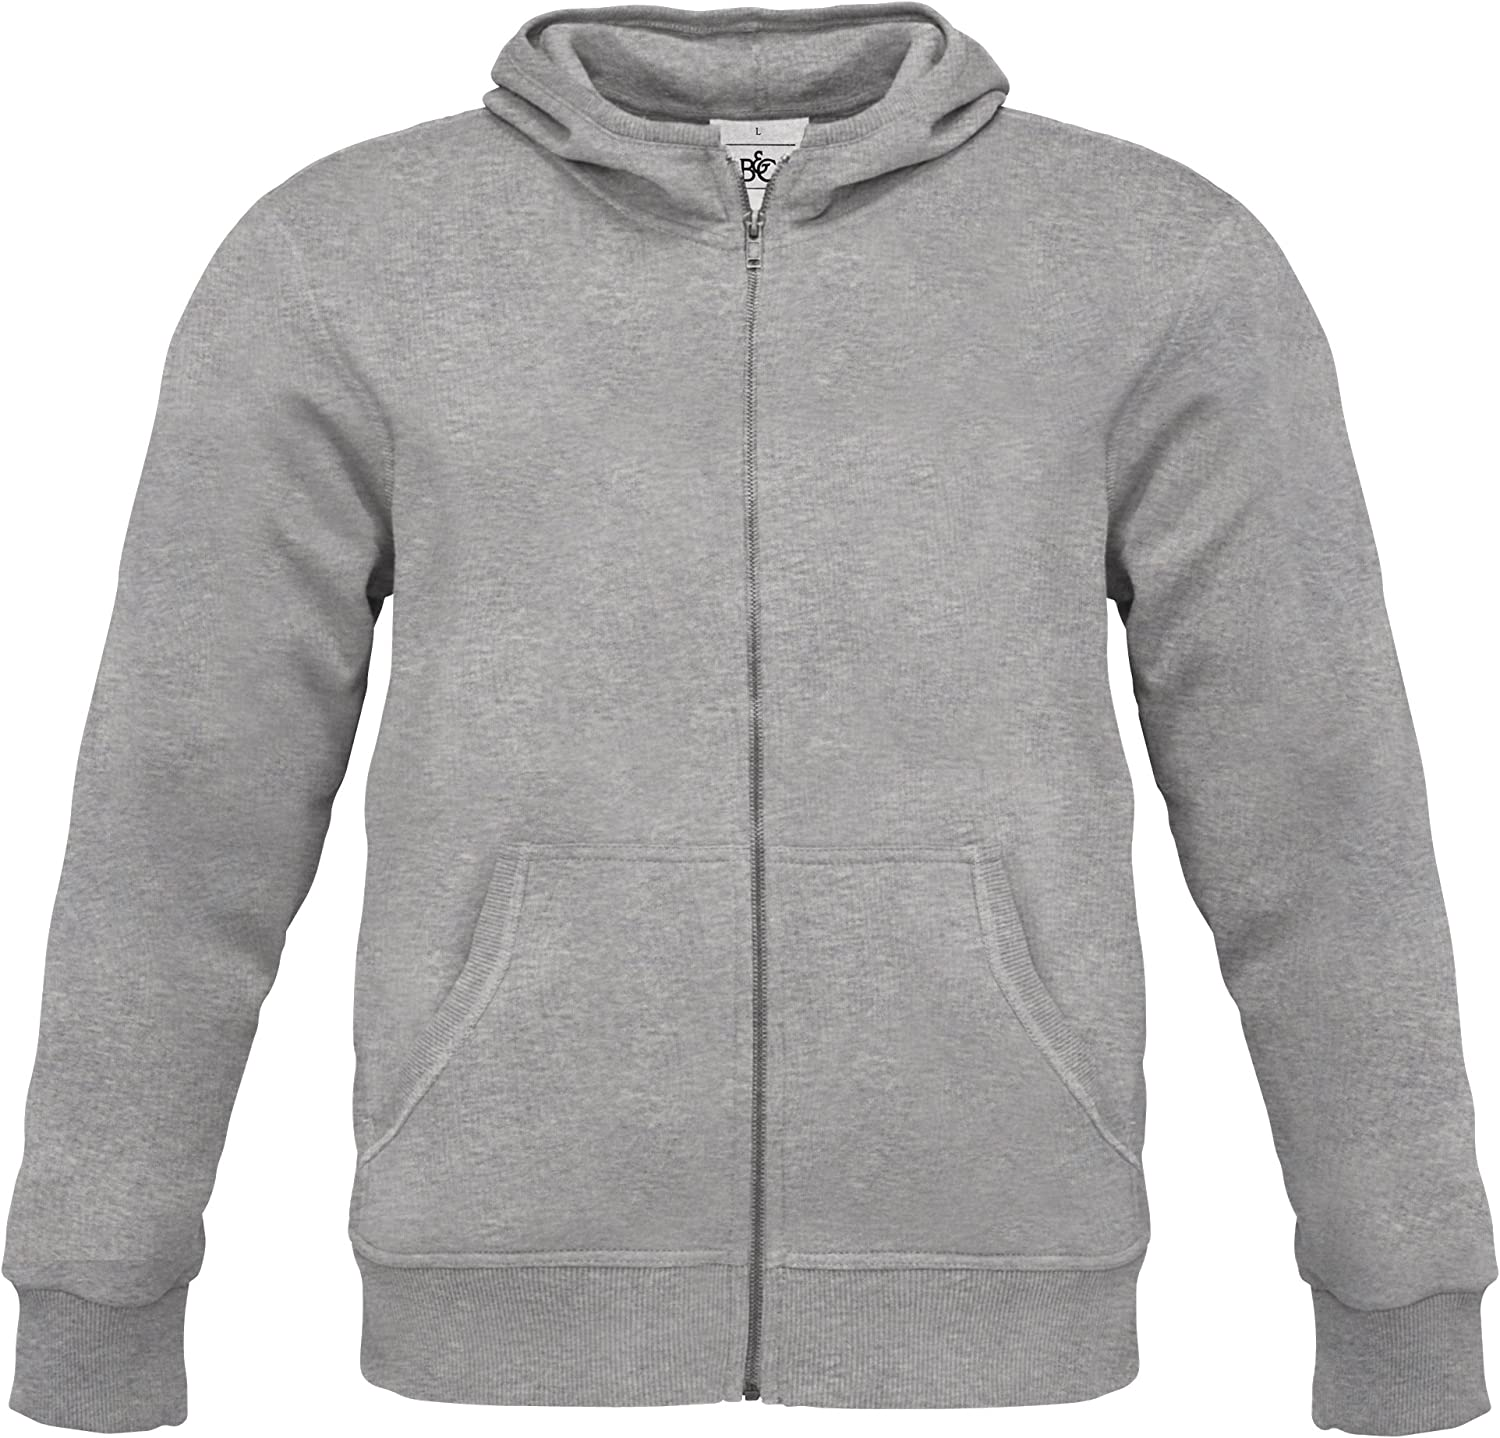 B&C Mens Monster Full Zip Hooded Sweatshirt Hoodie